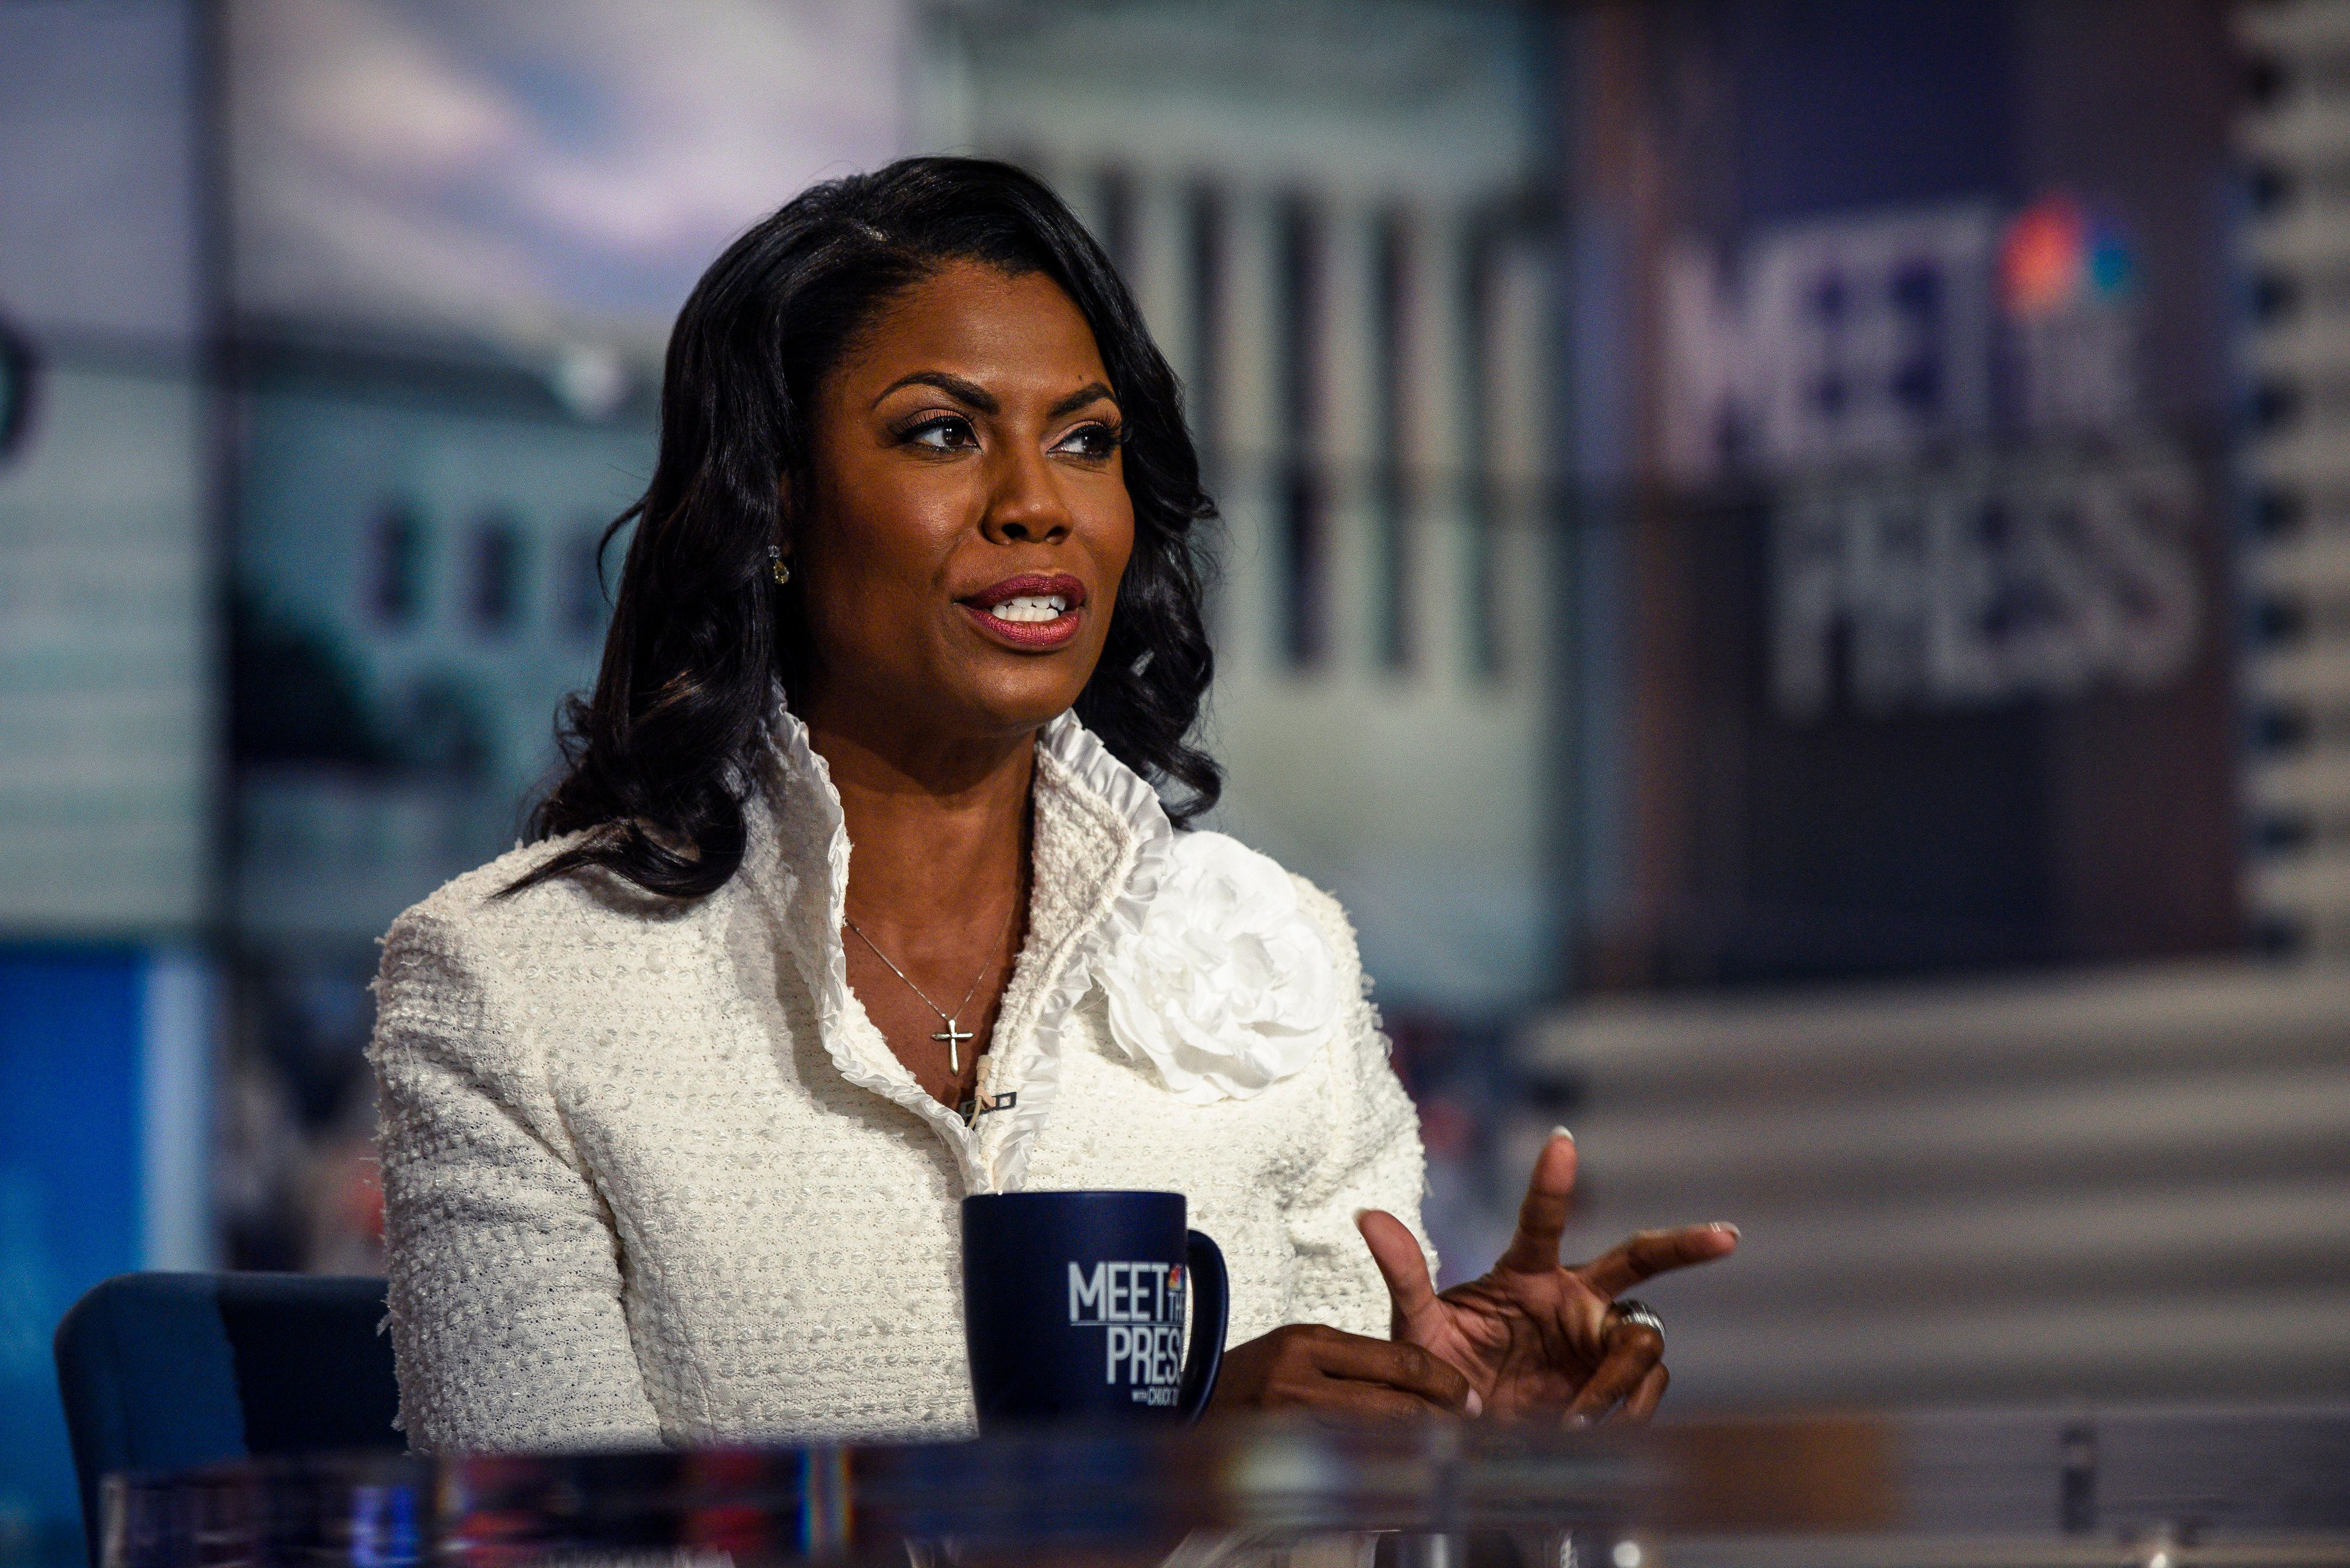 Trump Campaign Takes Legal Action Against Ex-Aide Omarosa Over New